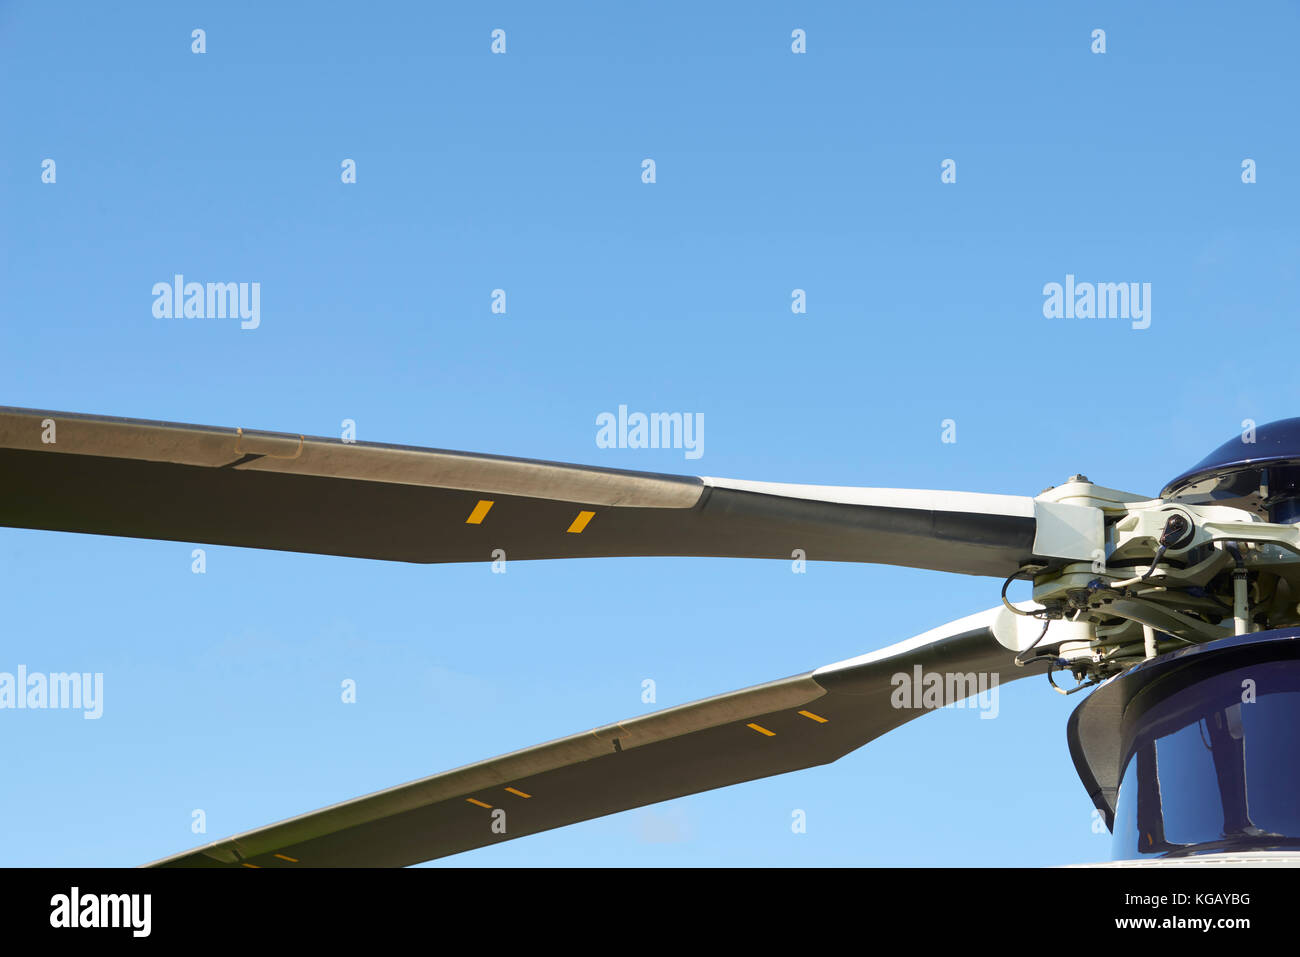 Close Up Of Helicopter Rotor Blades - Stock Image